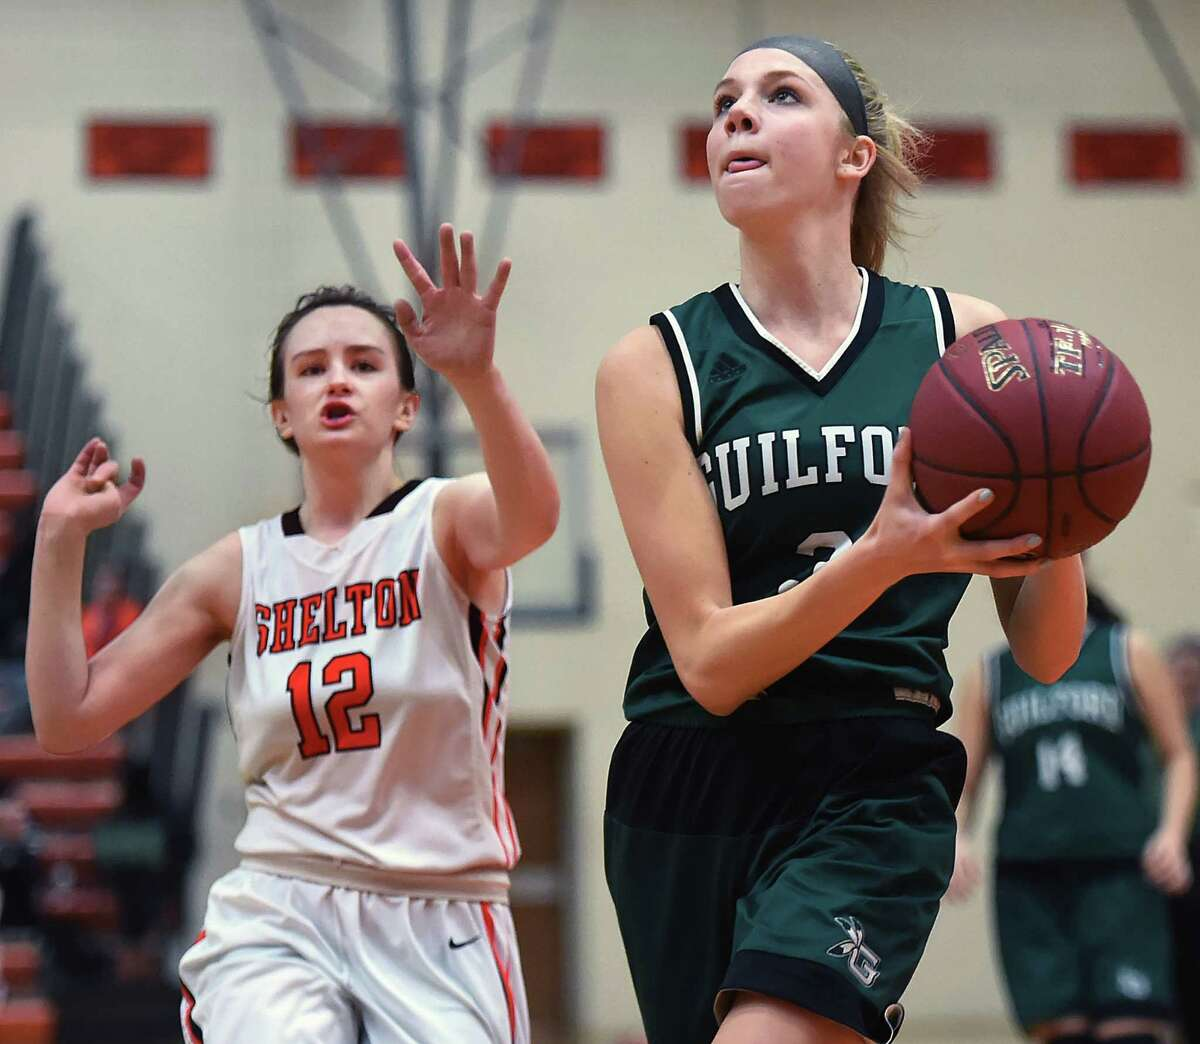 Guilford senior captain Camryn Craig drives past Shelton senior guard Emmeline Bronson on a fast break to the hoop as the Indians defeat the Gaelettes, 63 - 40, Friday, January 20, 2017, at the Vincent J. Murray Memorial Gym at Shelton High School. (Catherine Avalone/New Haven Register)